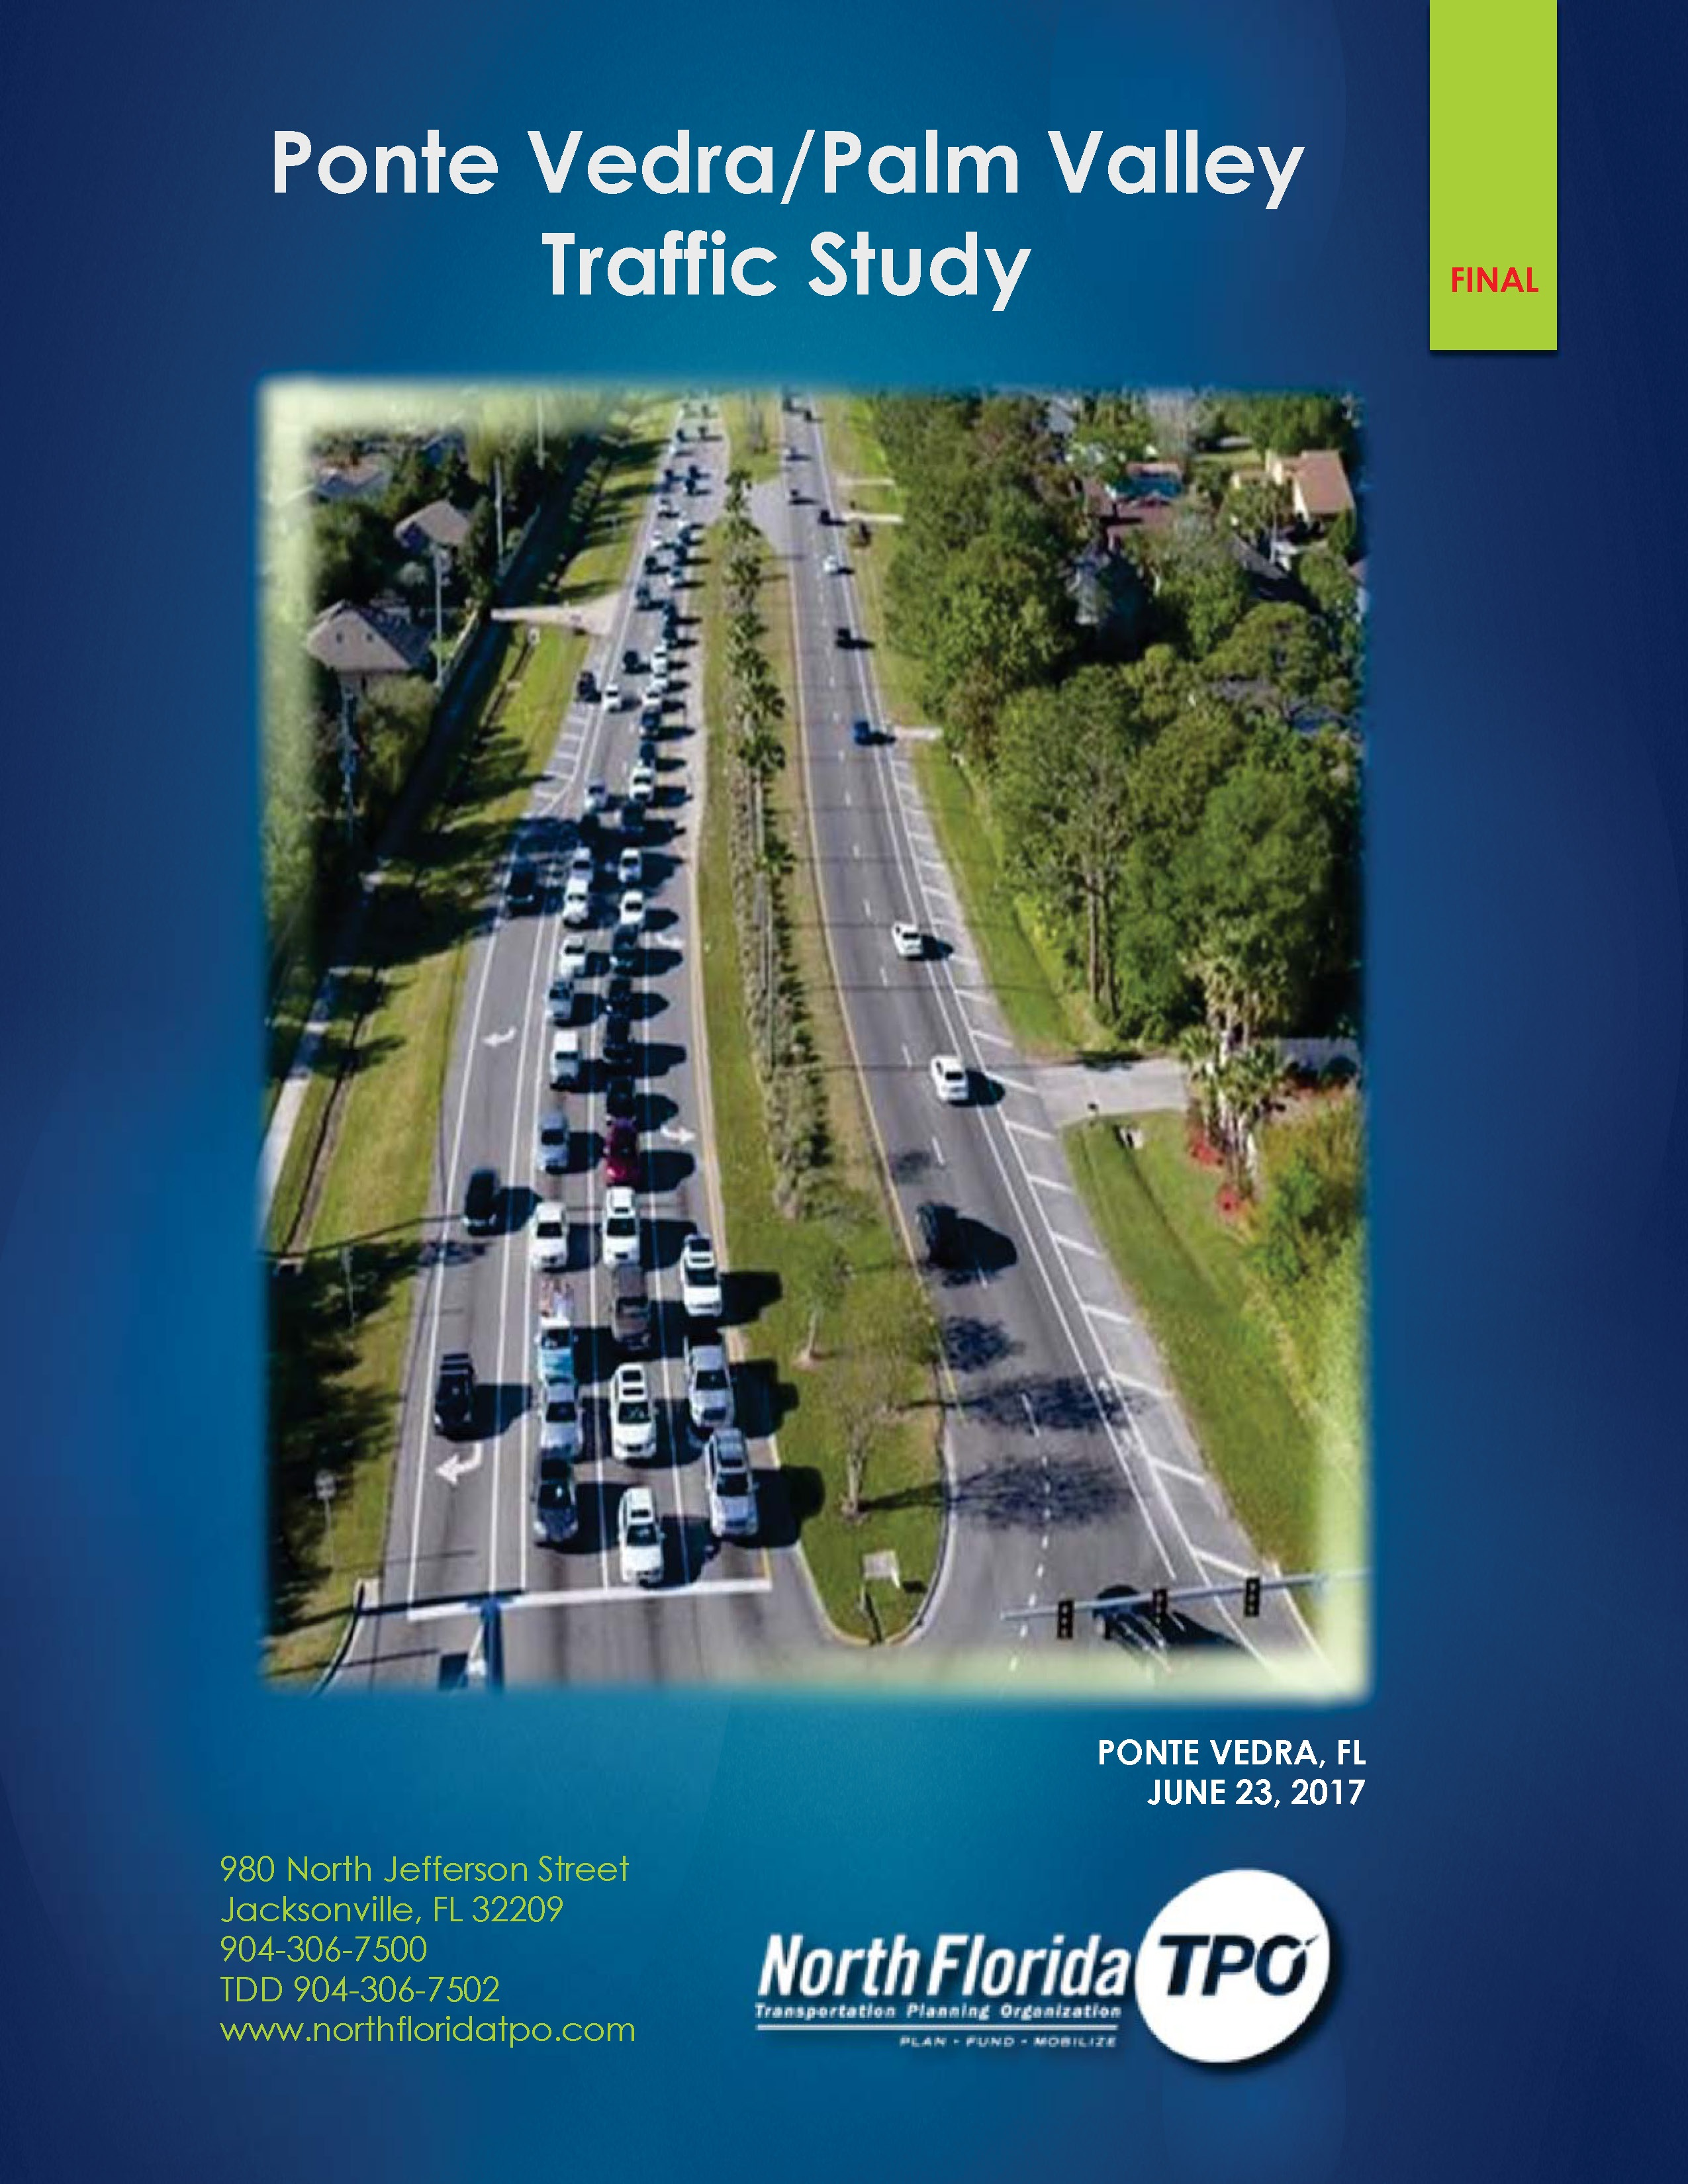 Ponte Vedra Palm Valley Traffic Study FINAL cover2